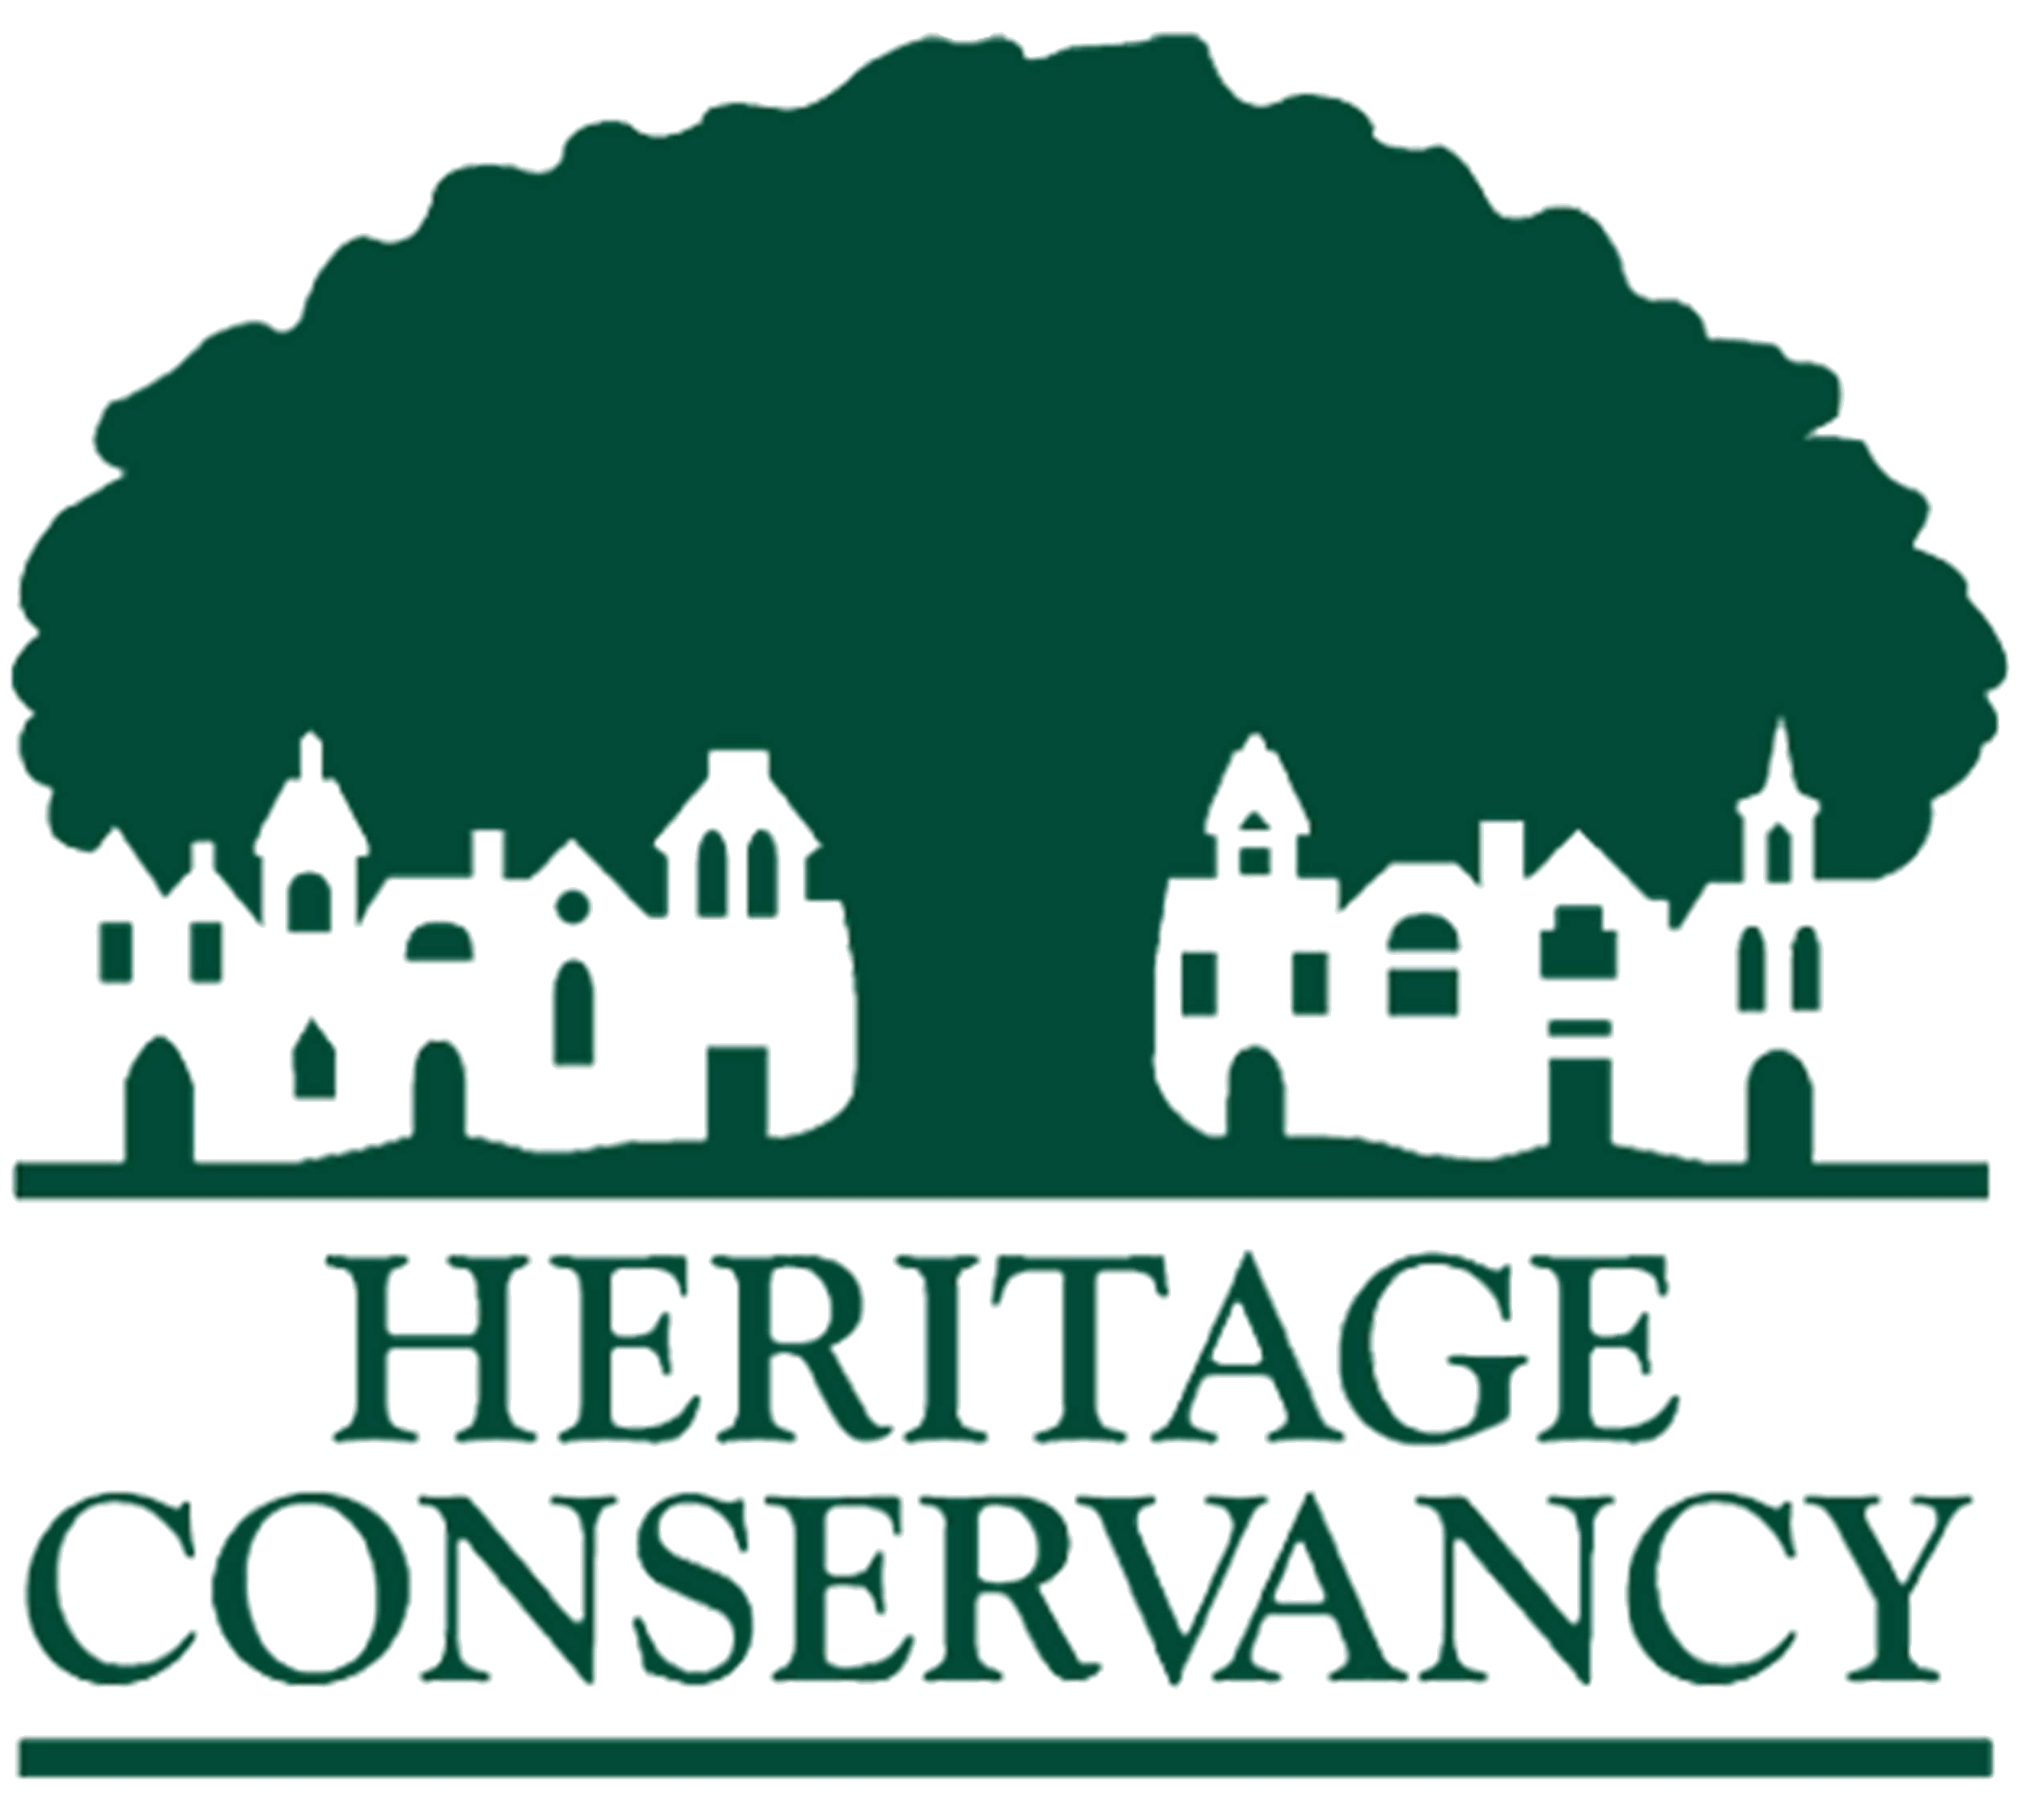 HeritageConservancy